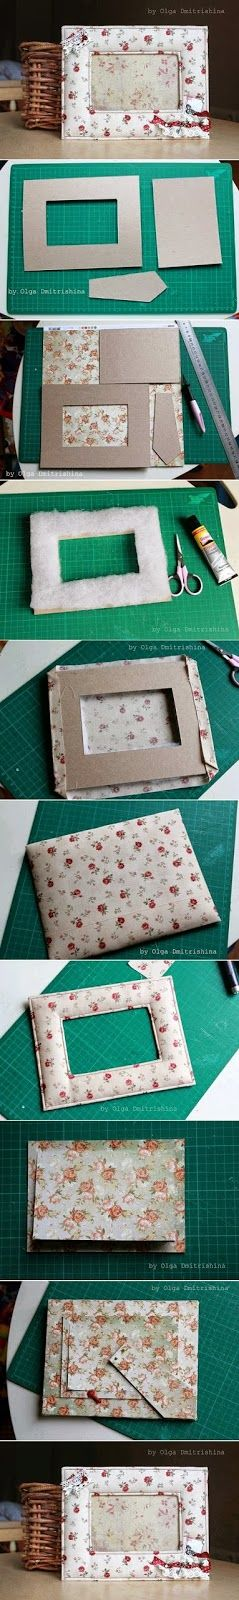 •❈• Easy Way To Make a Picture Frame